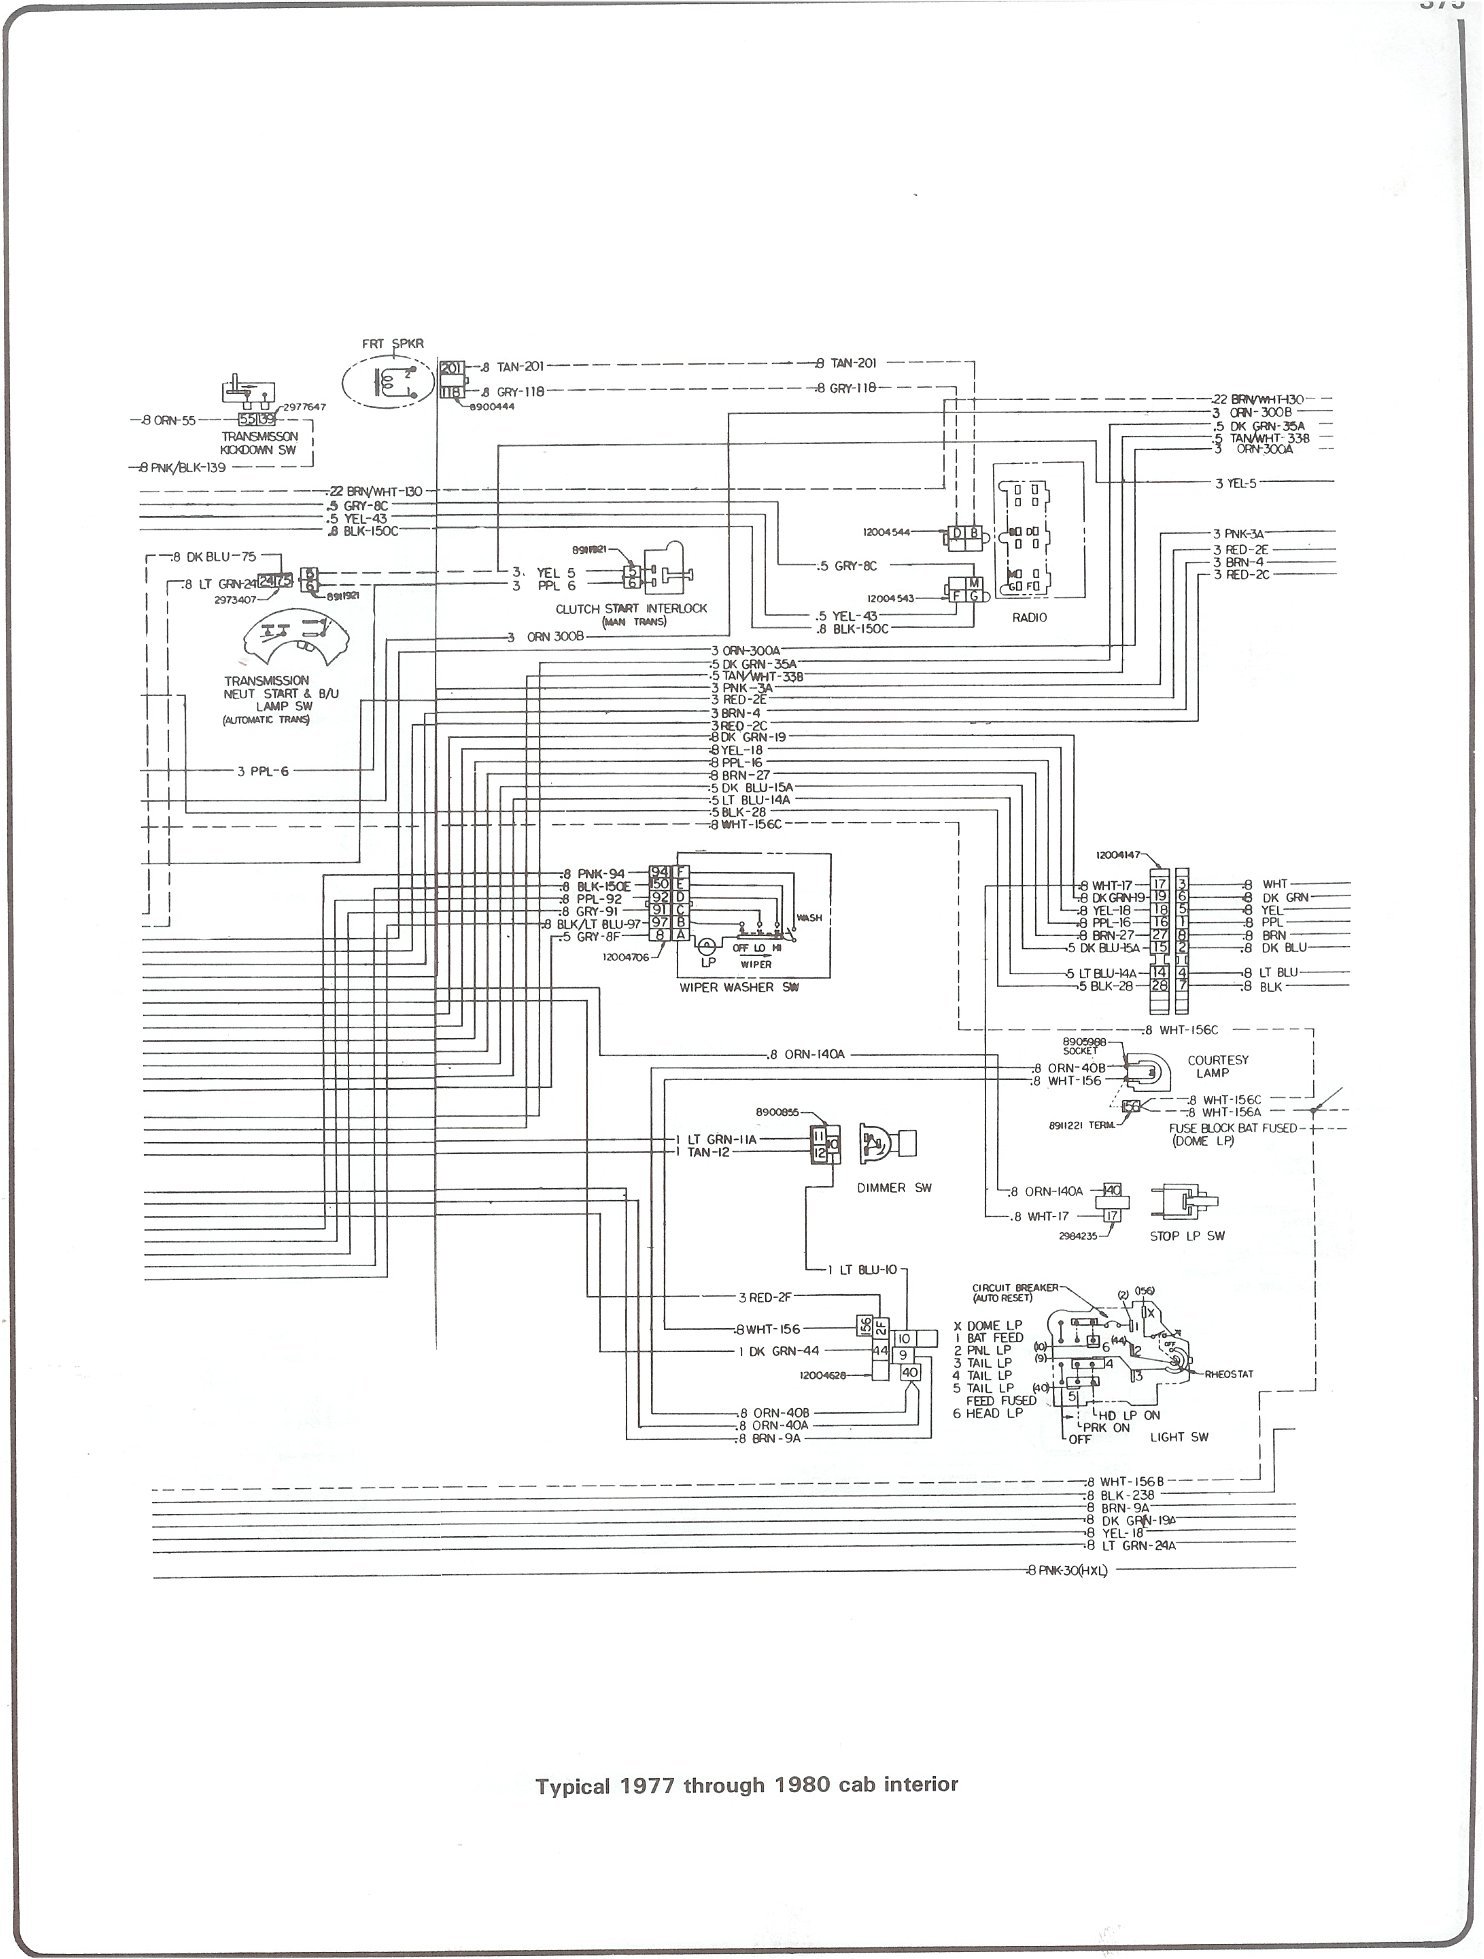 hight resolution of wiring diagram 1980 volare wiring diagrams76 volare wiring diagrams today wiring diagram pontiac volare 1977 plymouth